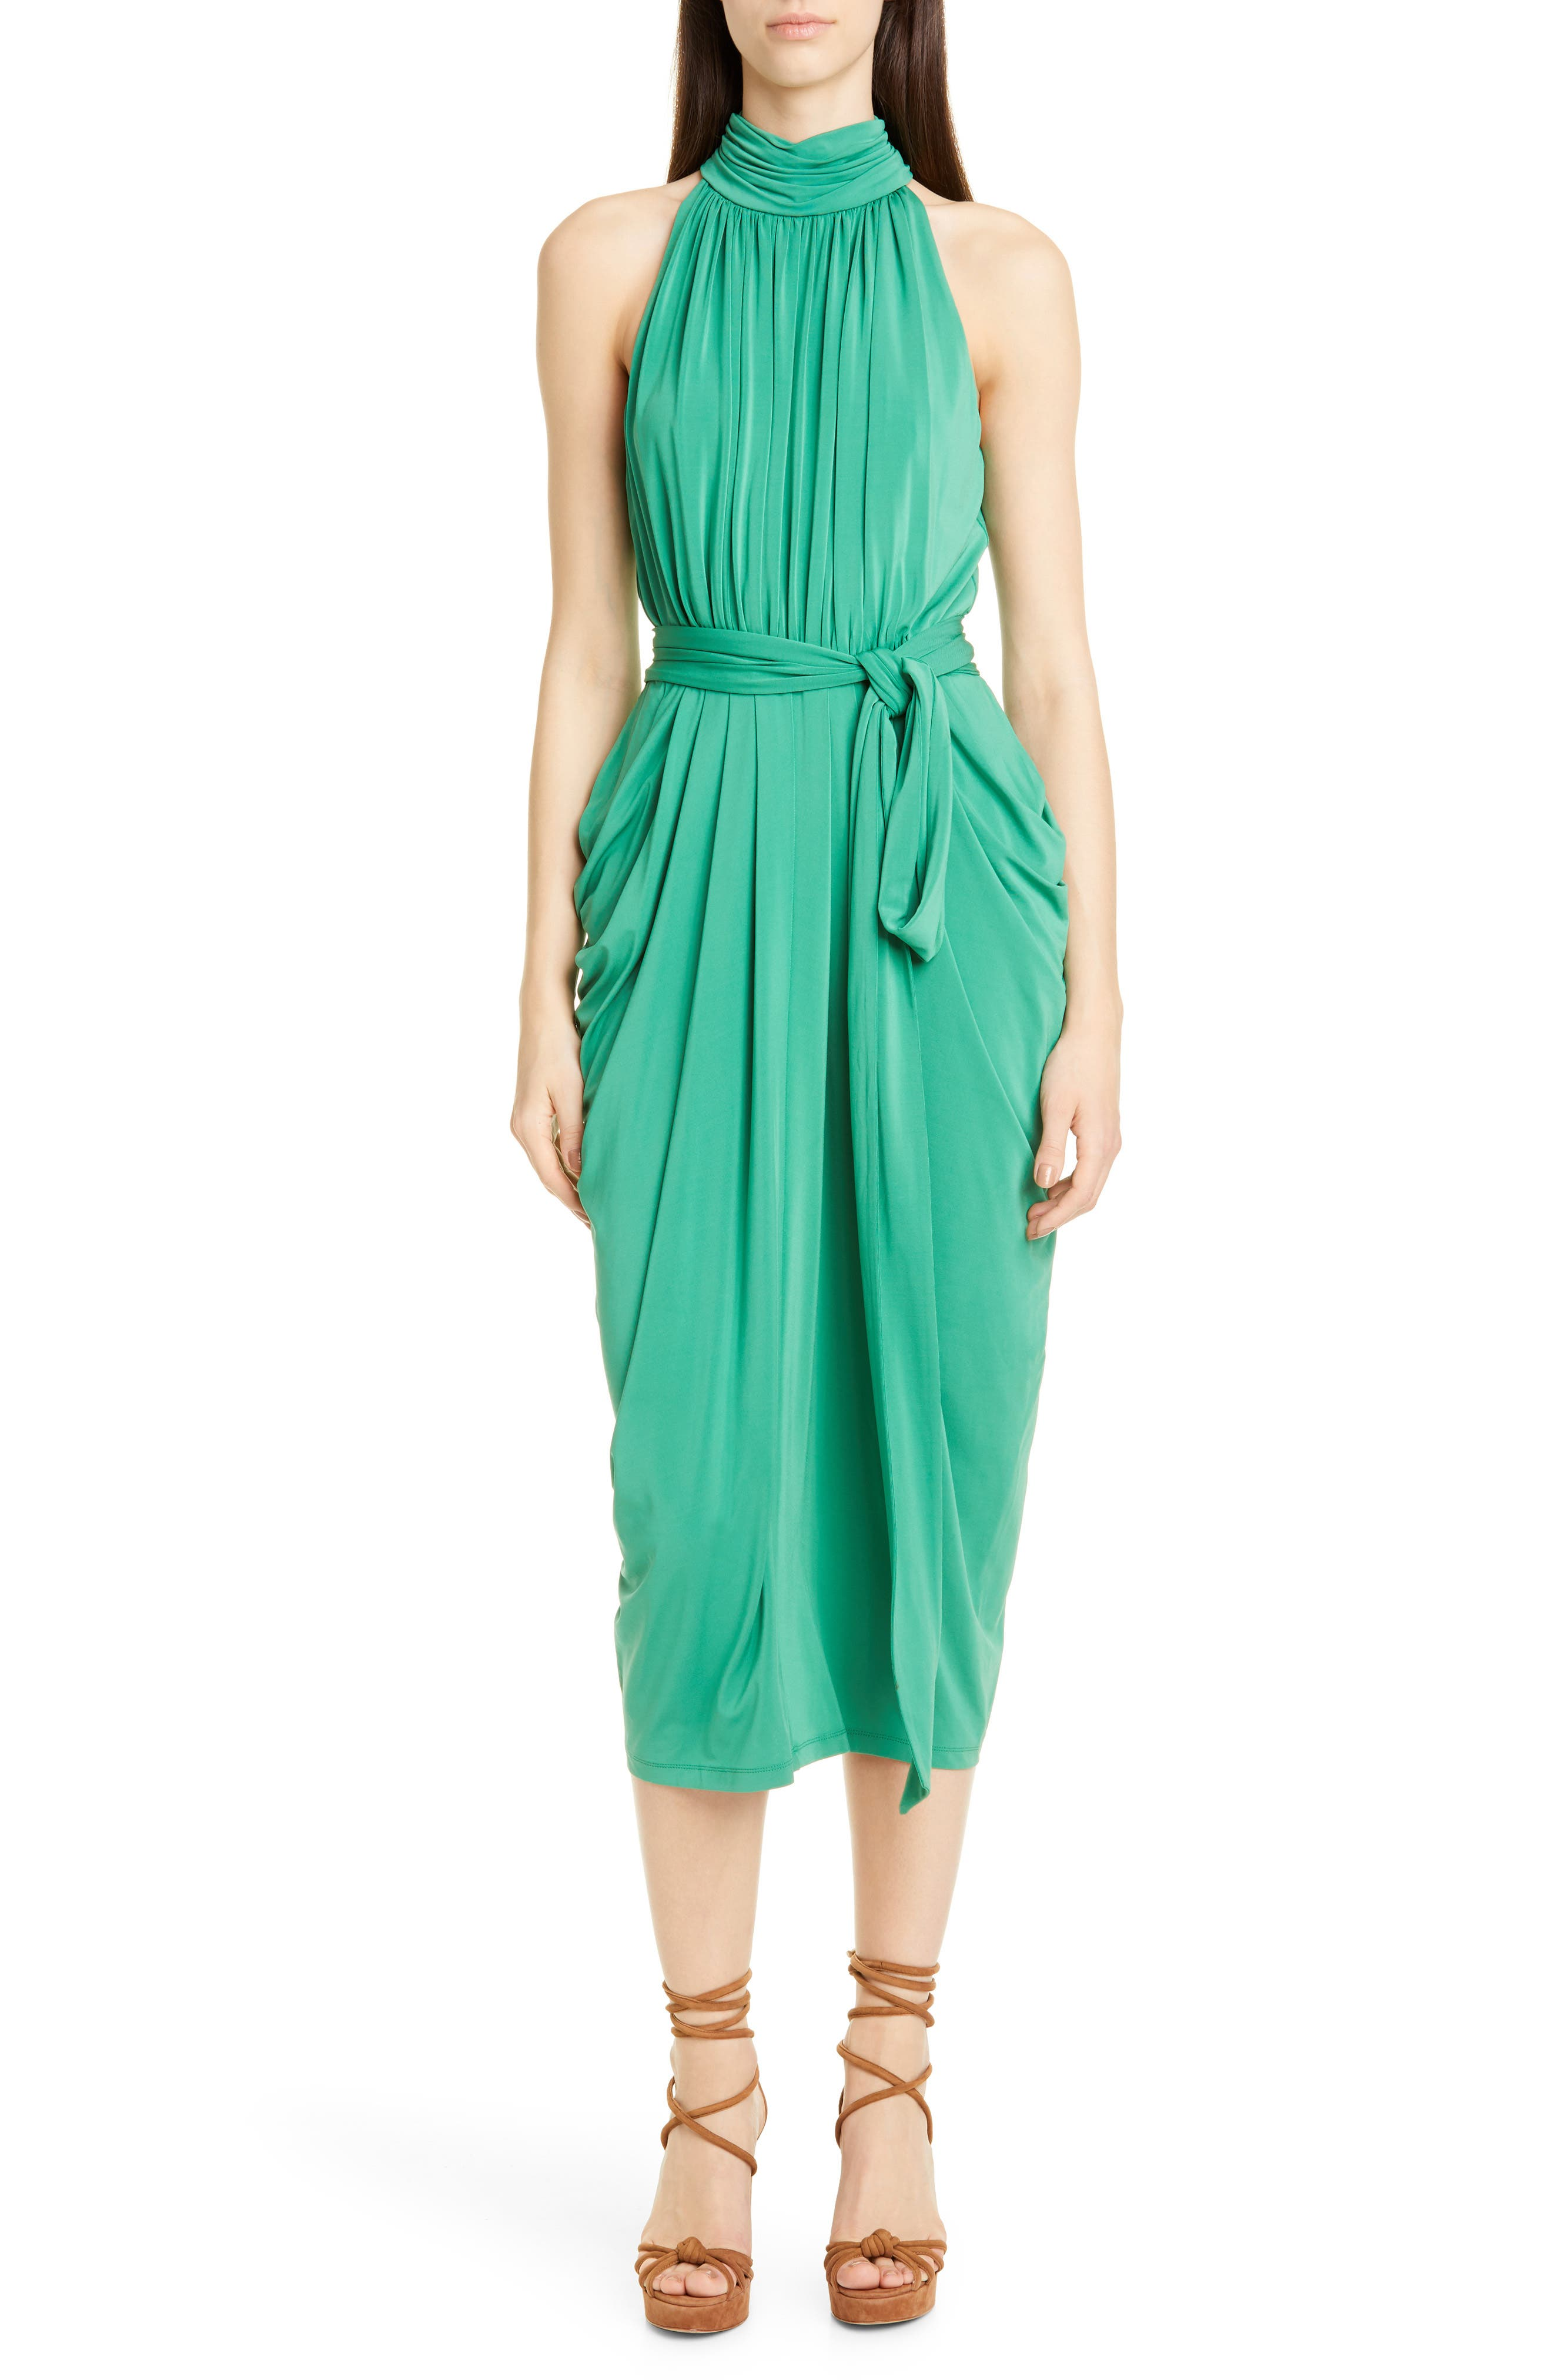 Tommy X Zendaya Halter Neck Drape Midi Dress, 2 (similar to 20W-2) - Green